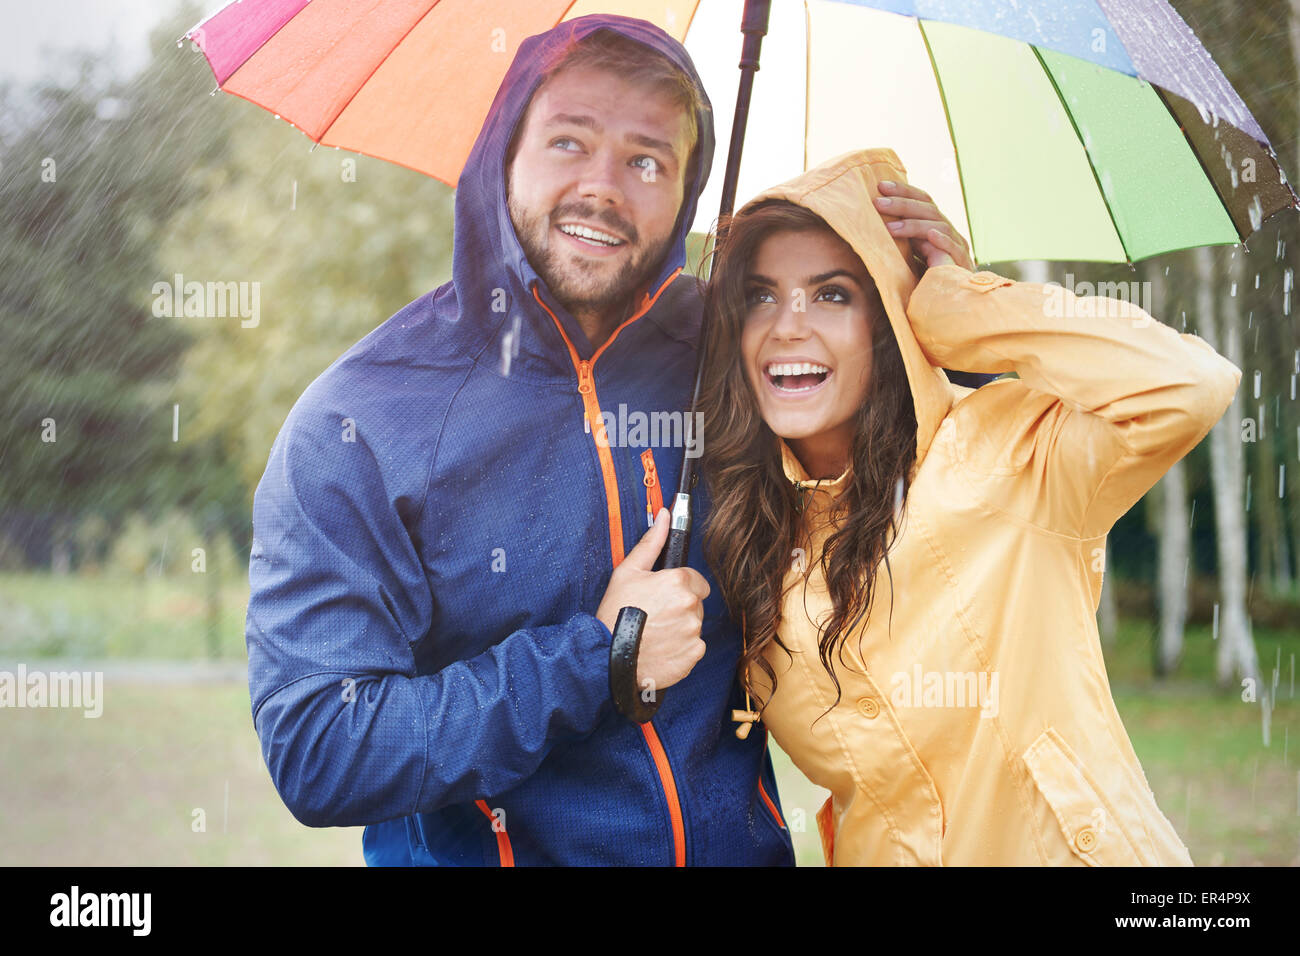 Even in big storm we have good mood. Debica, Poland - Stock Image